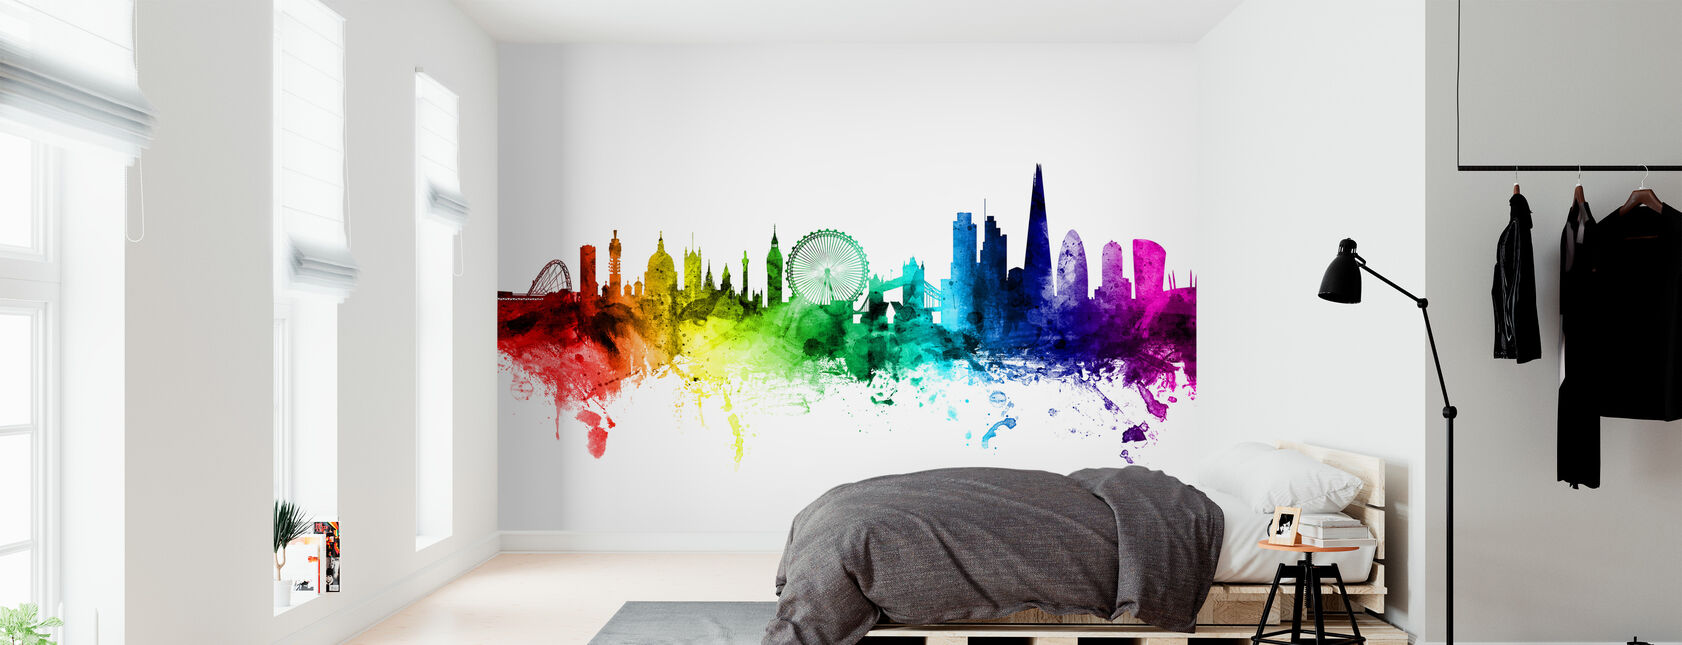 London Skyline Rainbow - Wallpaper - Bedroom